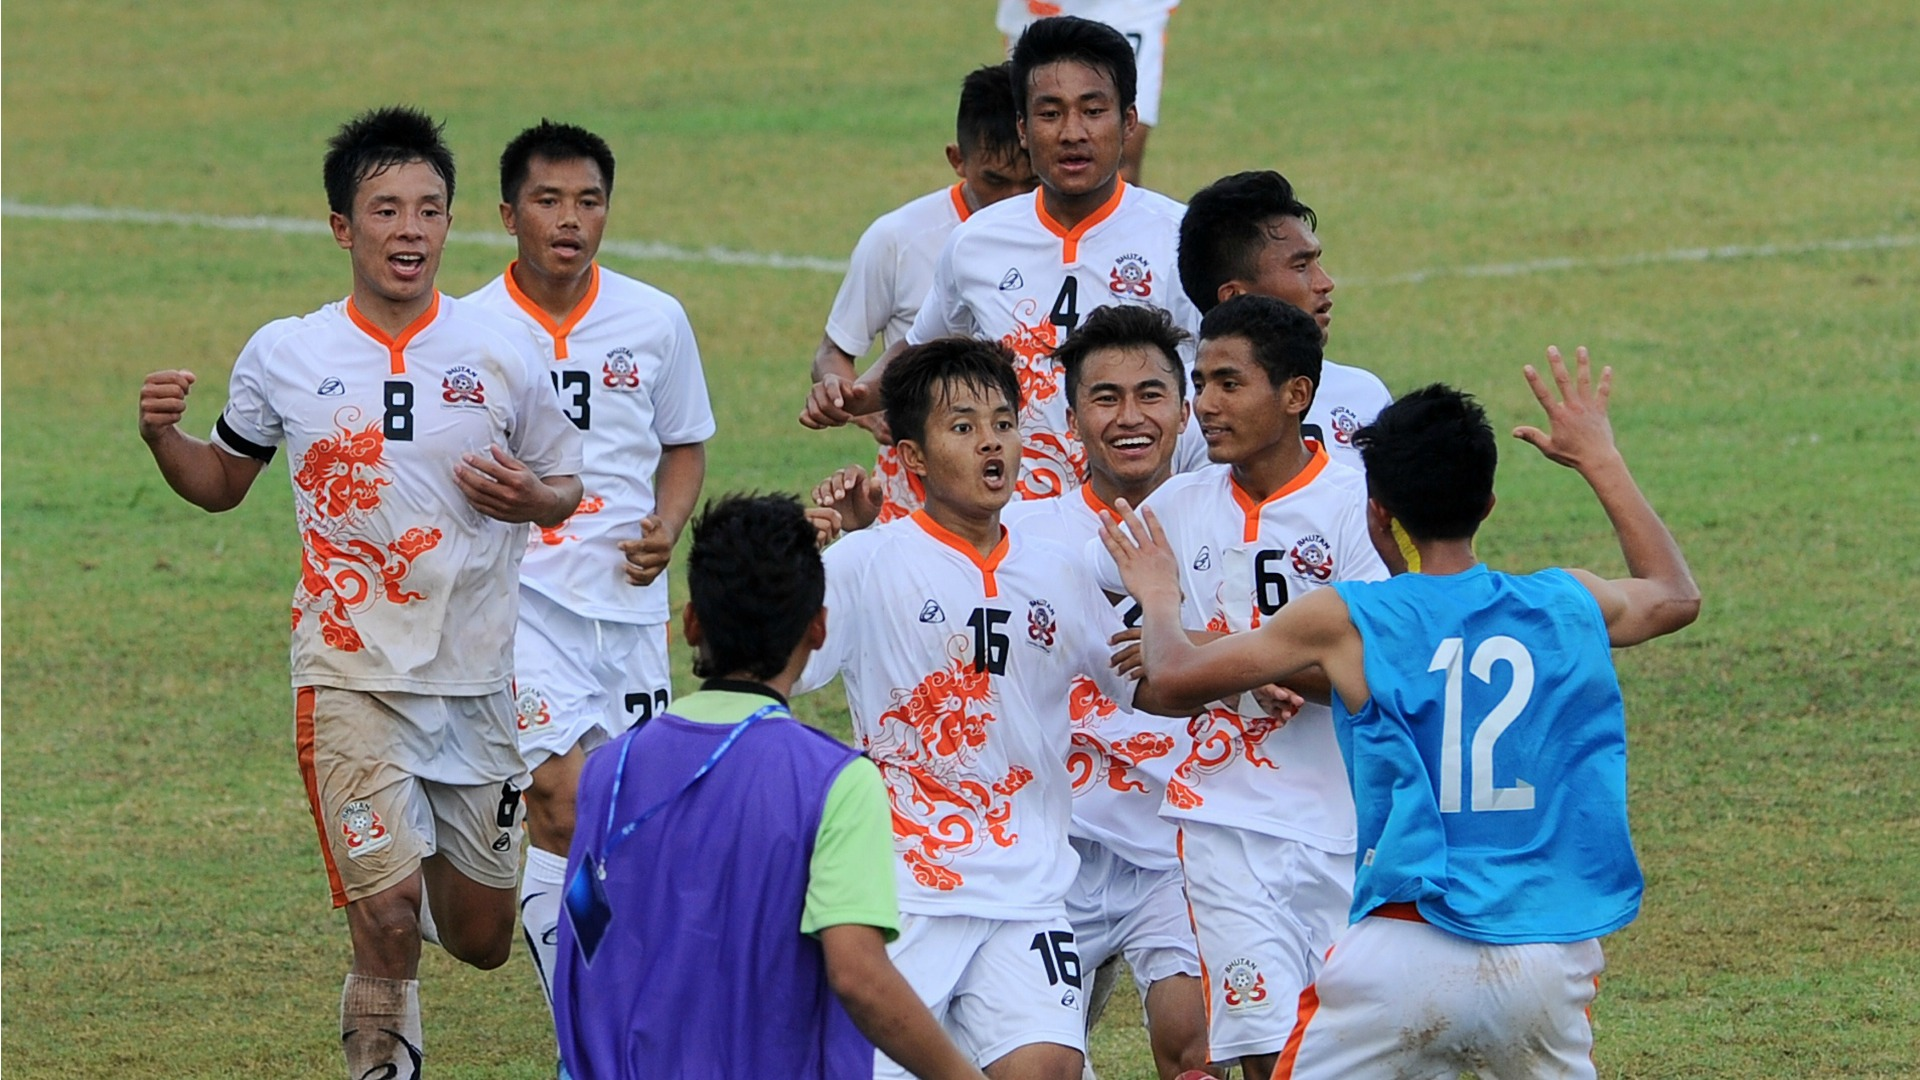 bhutan-national-team_45uyt1ohskjl1fhpzcr